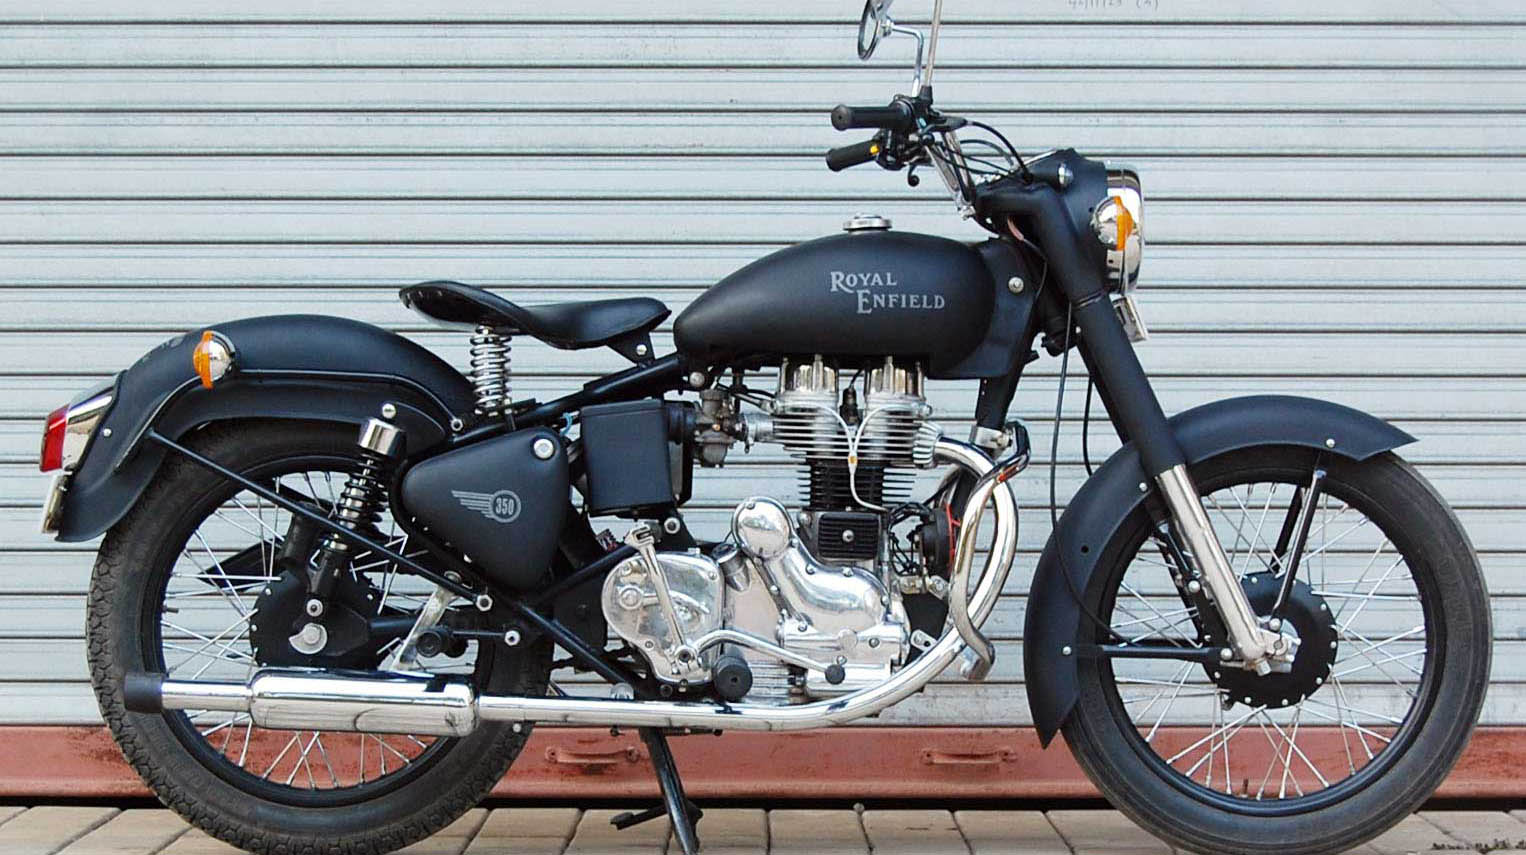 Royal Enfield Intends To Ramp Up Its Production Capacity